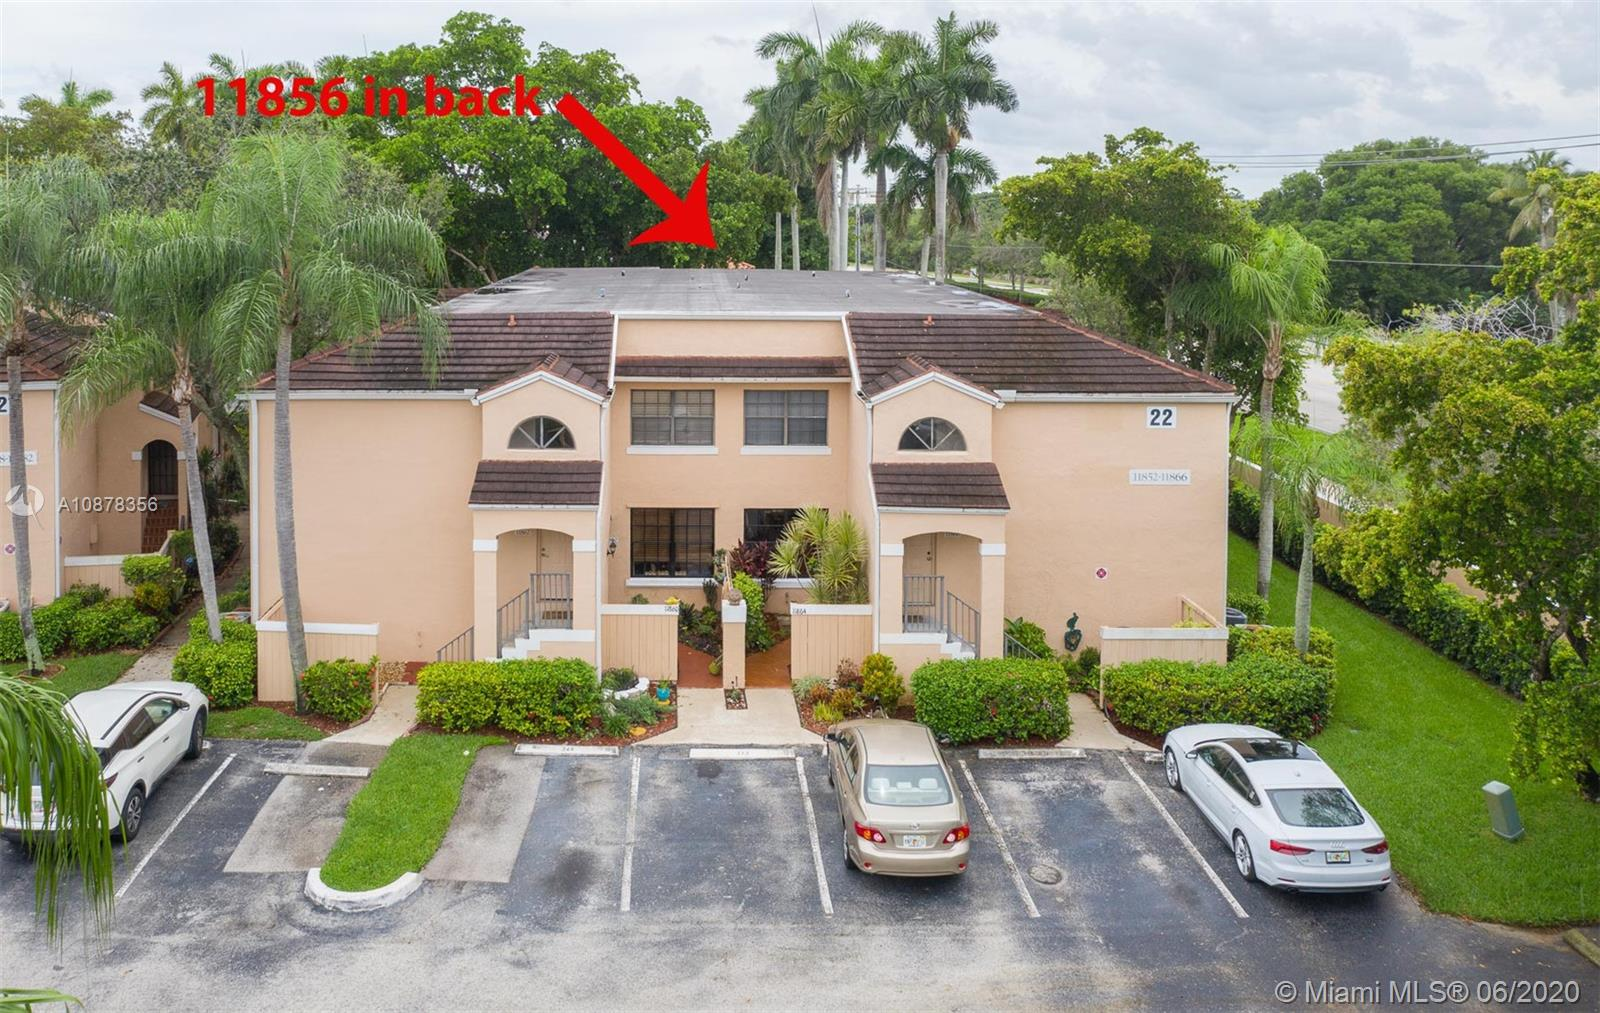 DESIRABLE & RARELY AVAILABLE LOCATION OF PIERPOINTE IN PEMBROKE PINES. SPACIOUS  3 BEDROOMS 2 BATHS ON 1ST FLOOR. TASTEFULLY UPGRADED WITH PORCELAIN TILE THROUGHOUT, AND LAMINATE WOOD FLOORS.  BEAUTIFUL KITCHEN WITH GRANITE COUNTER TOPS & STAINLESS STEEL APPLIANCES. NEWER A/C (2015) UNIT & WATER HEATER (2017). HURRICANE ACCORDION SHUTTERS. OTHER ROOMS INCLUDE : EAT-IN KITCHEN, LIVING/DINING AREA COMBINATION. NEW SCREENED PORCH . PLENTY OF GUEST PARKING. HOA ASSOCIATION PAYMENT INCLUDES WATER, CABLE AND INSURANCE. THIS IS A MOVE IN READY.  LOCATED NEAR CB SMITH PARK, PEMBROKE LAKES MALL, RESTAURANTS, SPORTS COMPLEX AND HOSPITALS.